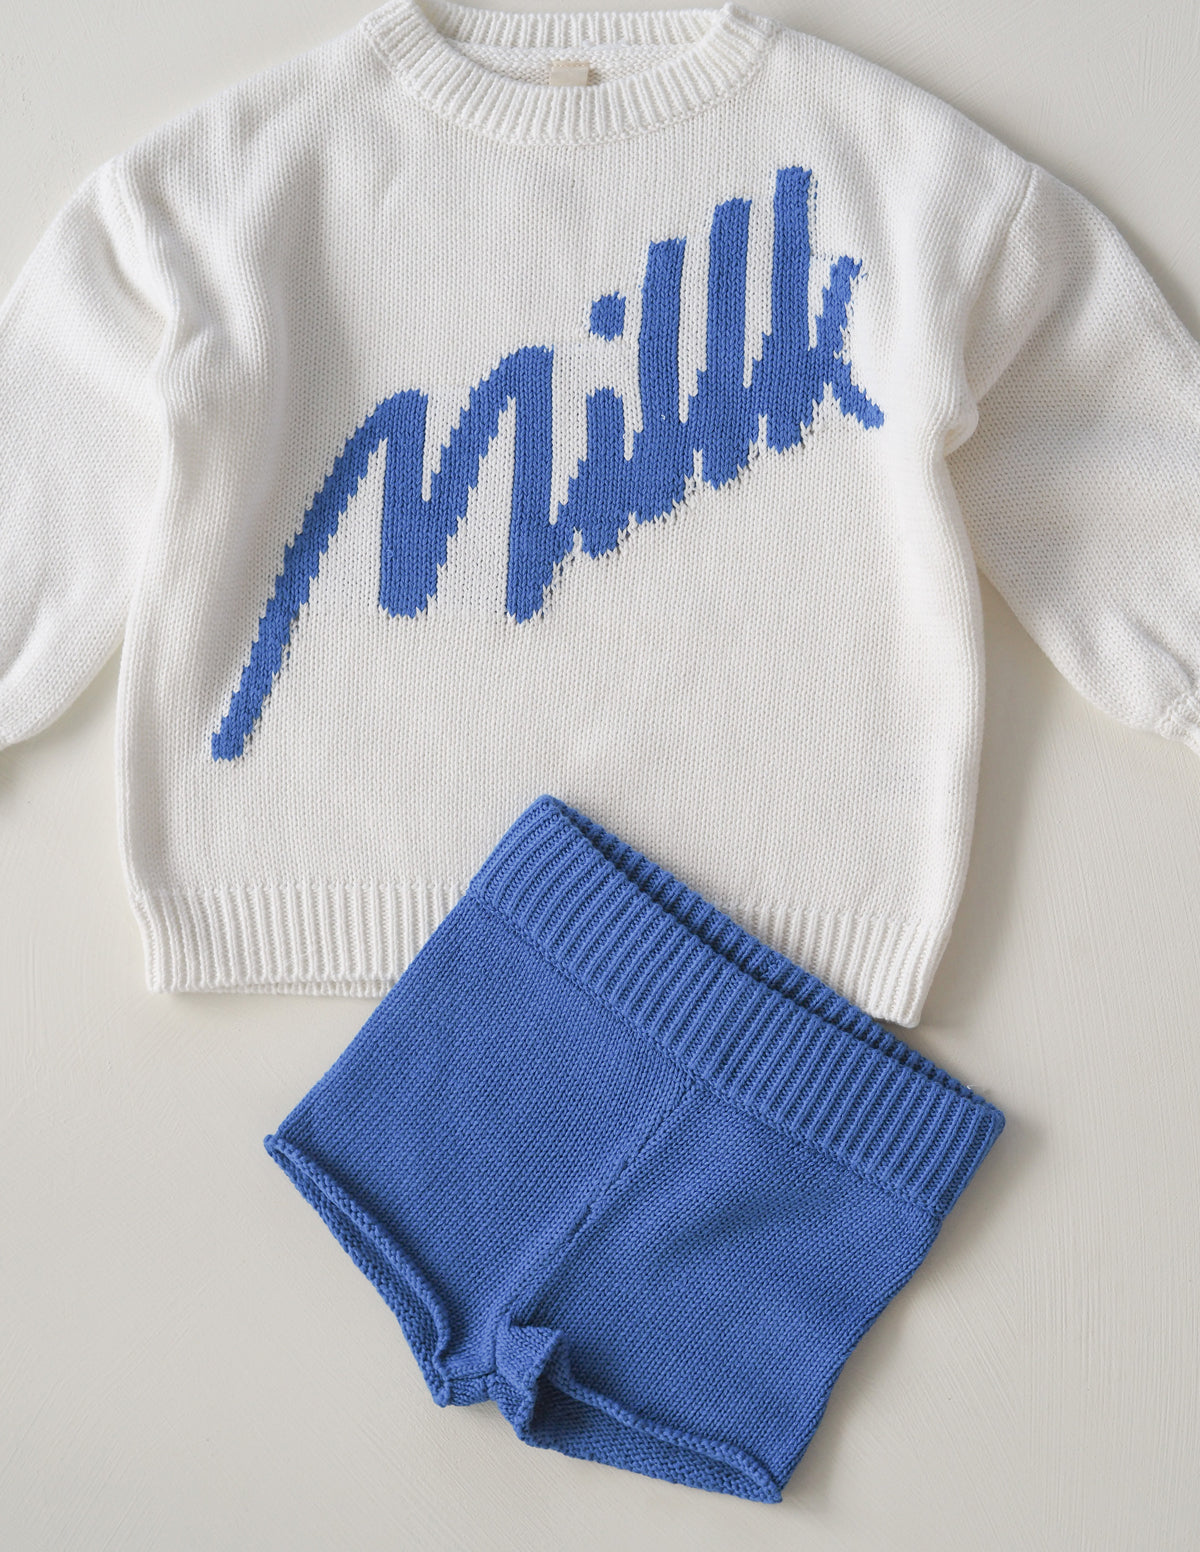 The Millk Short - Blue